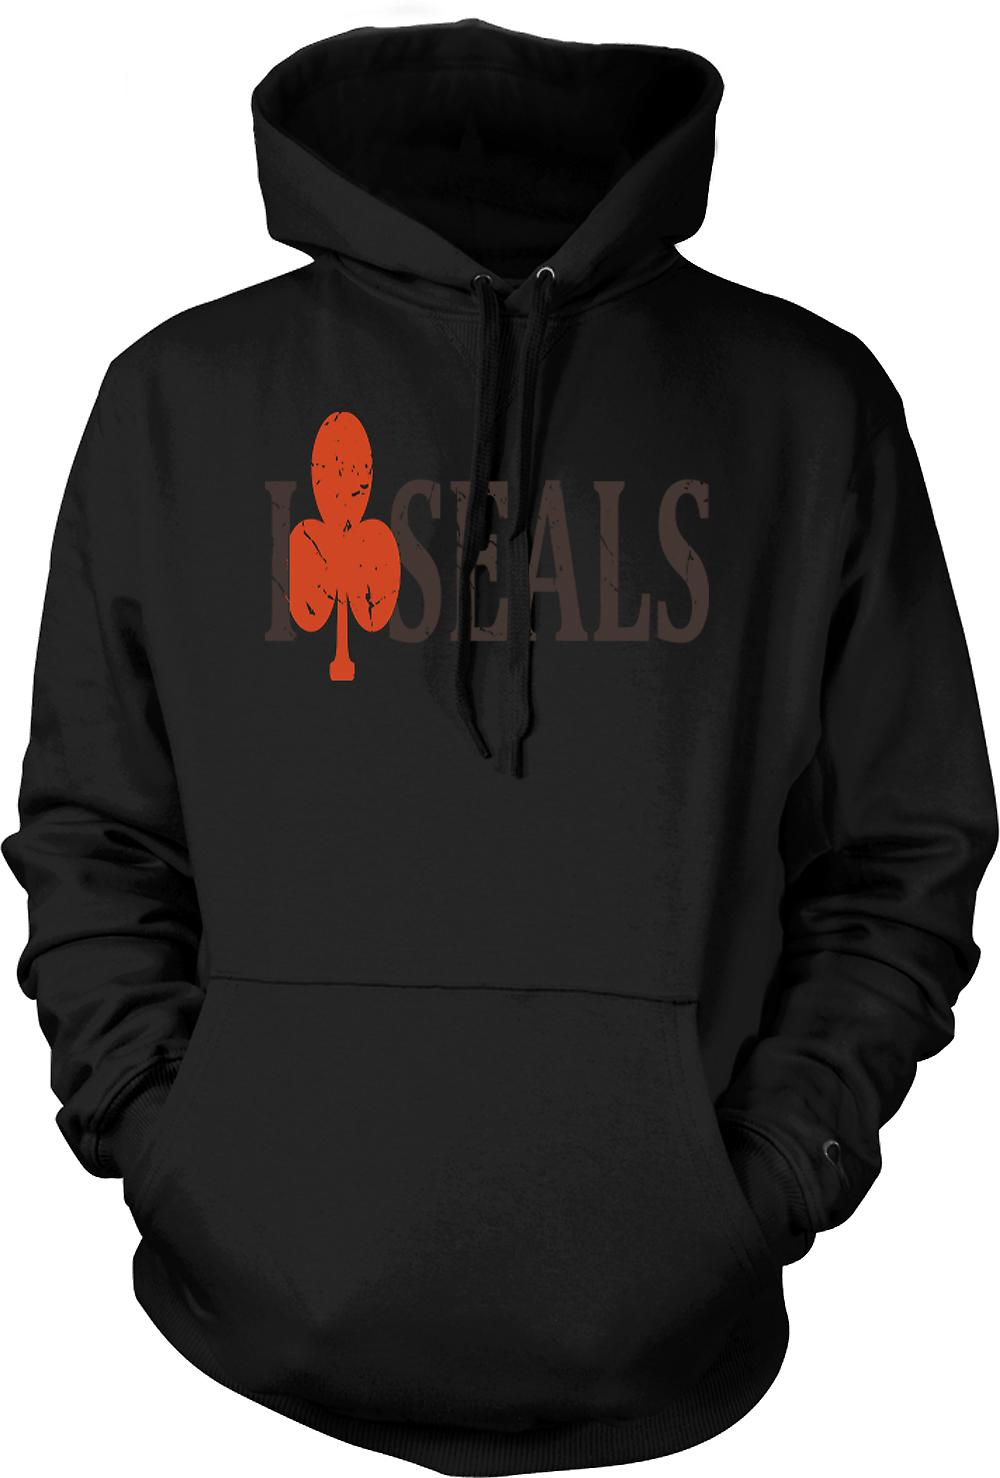 Mens Hoodie - I Club Seals - Funny Crude